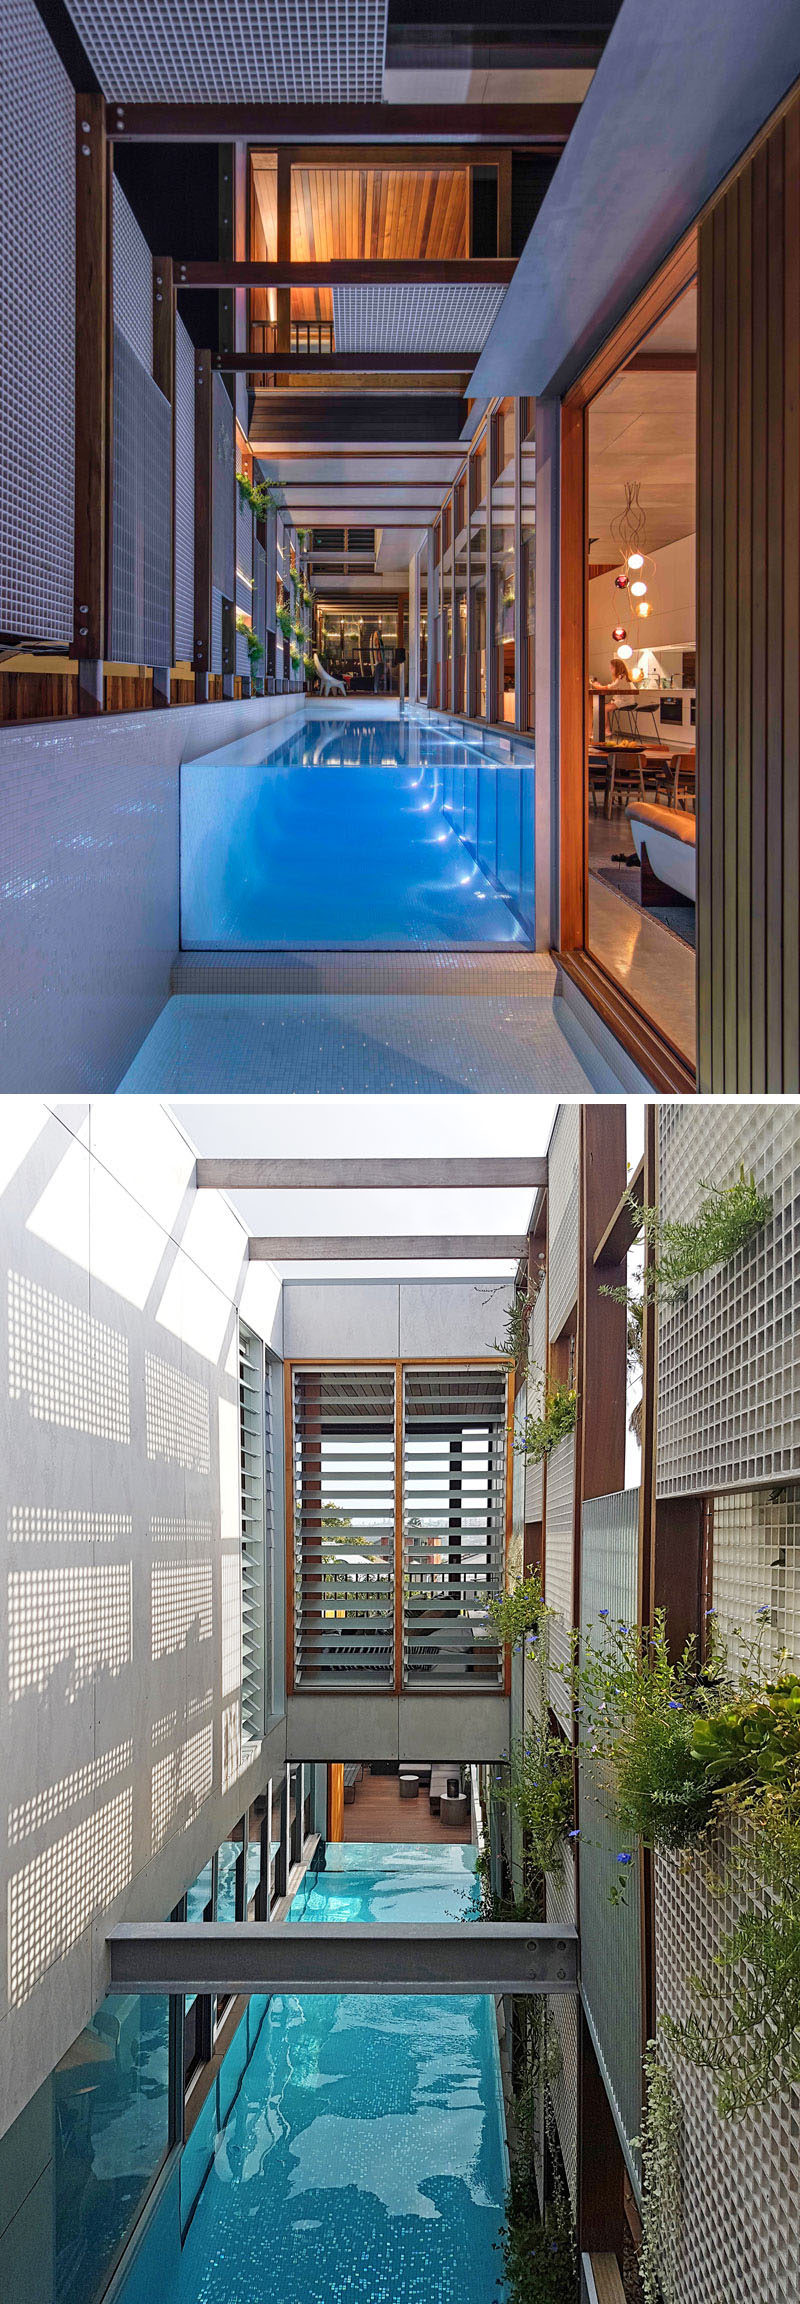 Off to the side of the living room in this modern house, is a small pond at the end of the above ground swimming pool. In these photos you can see how the space above the pool is partially open to the sky and allows sunlight to filter through.